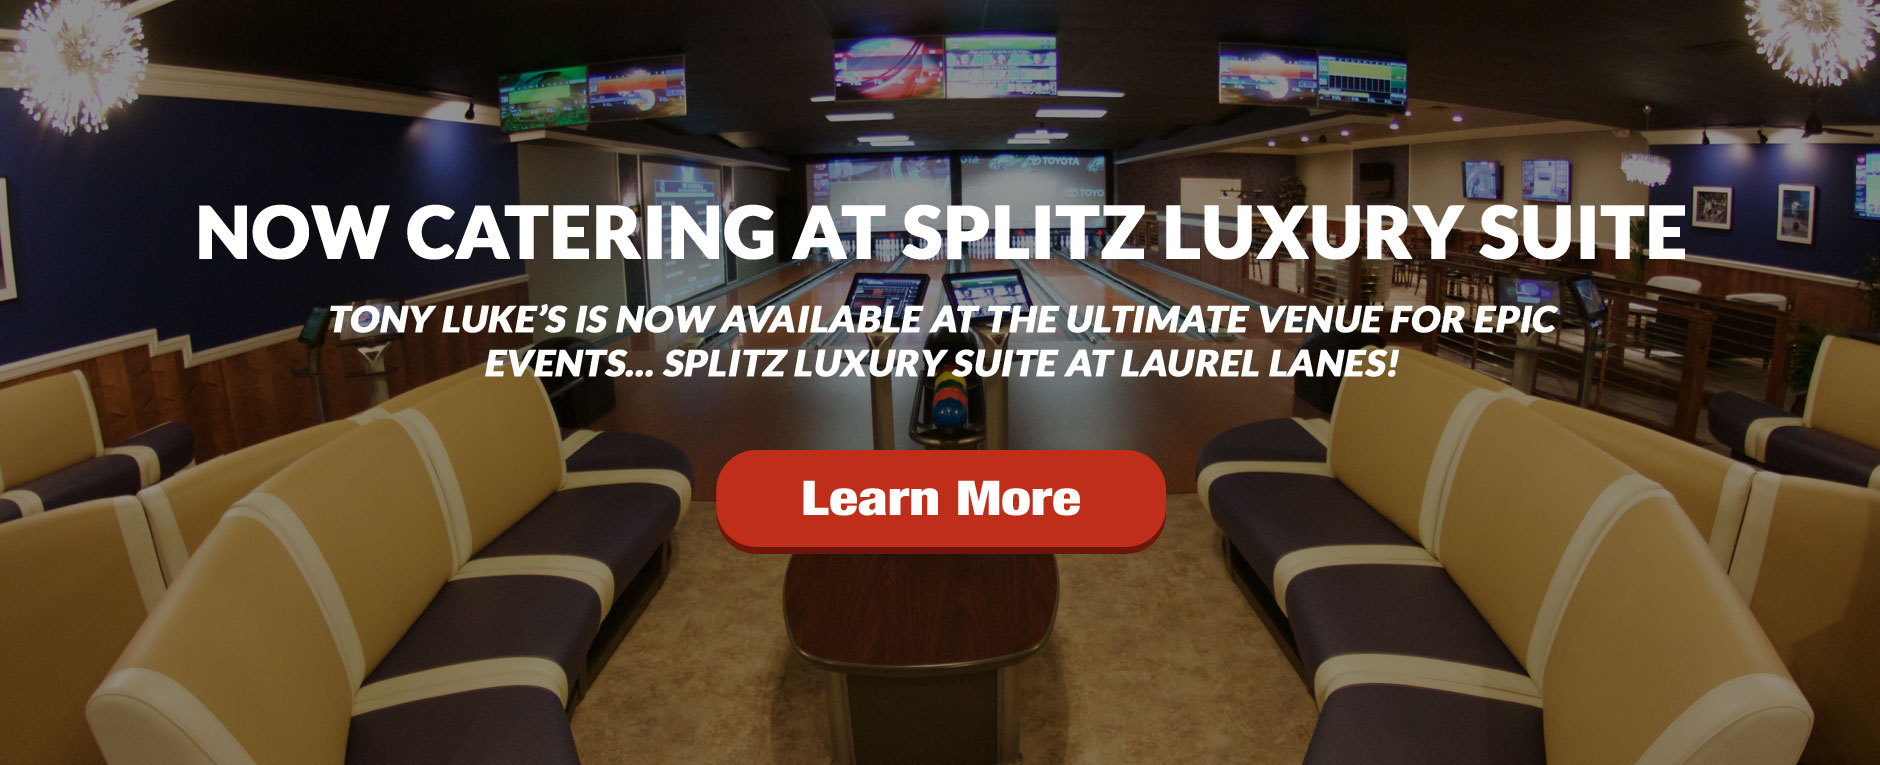 splitz luxury suites